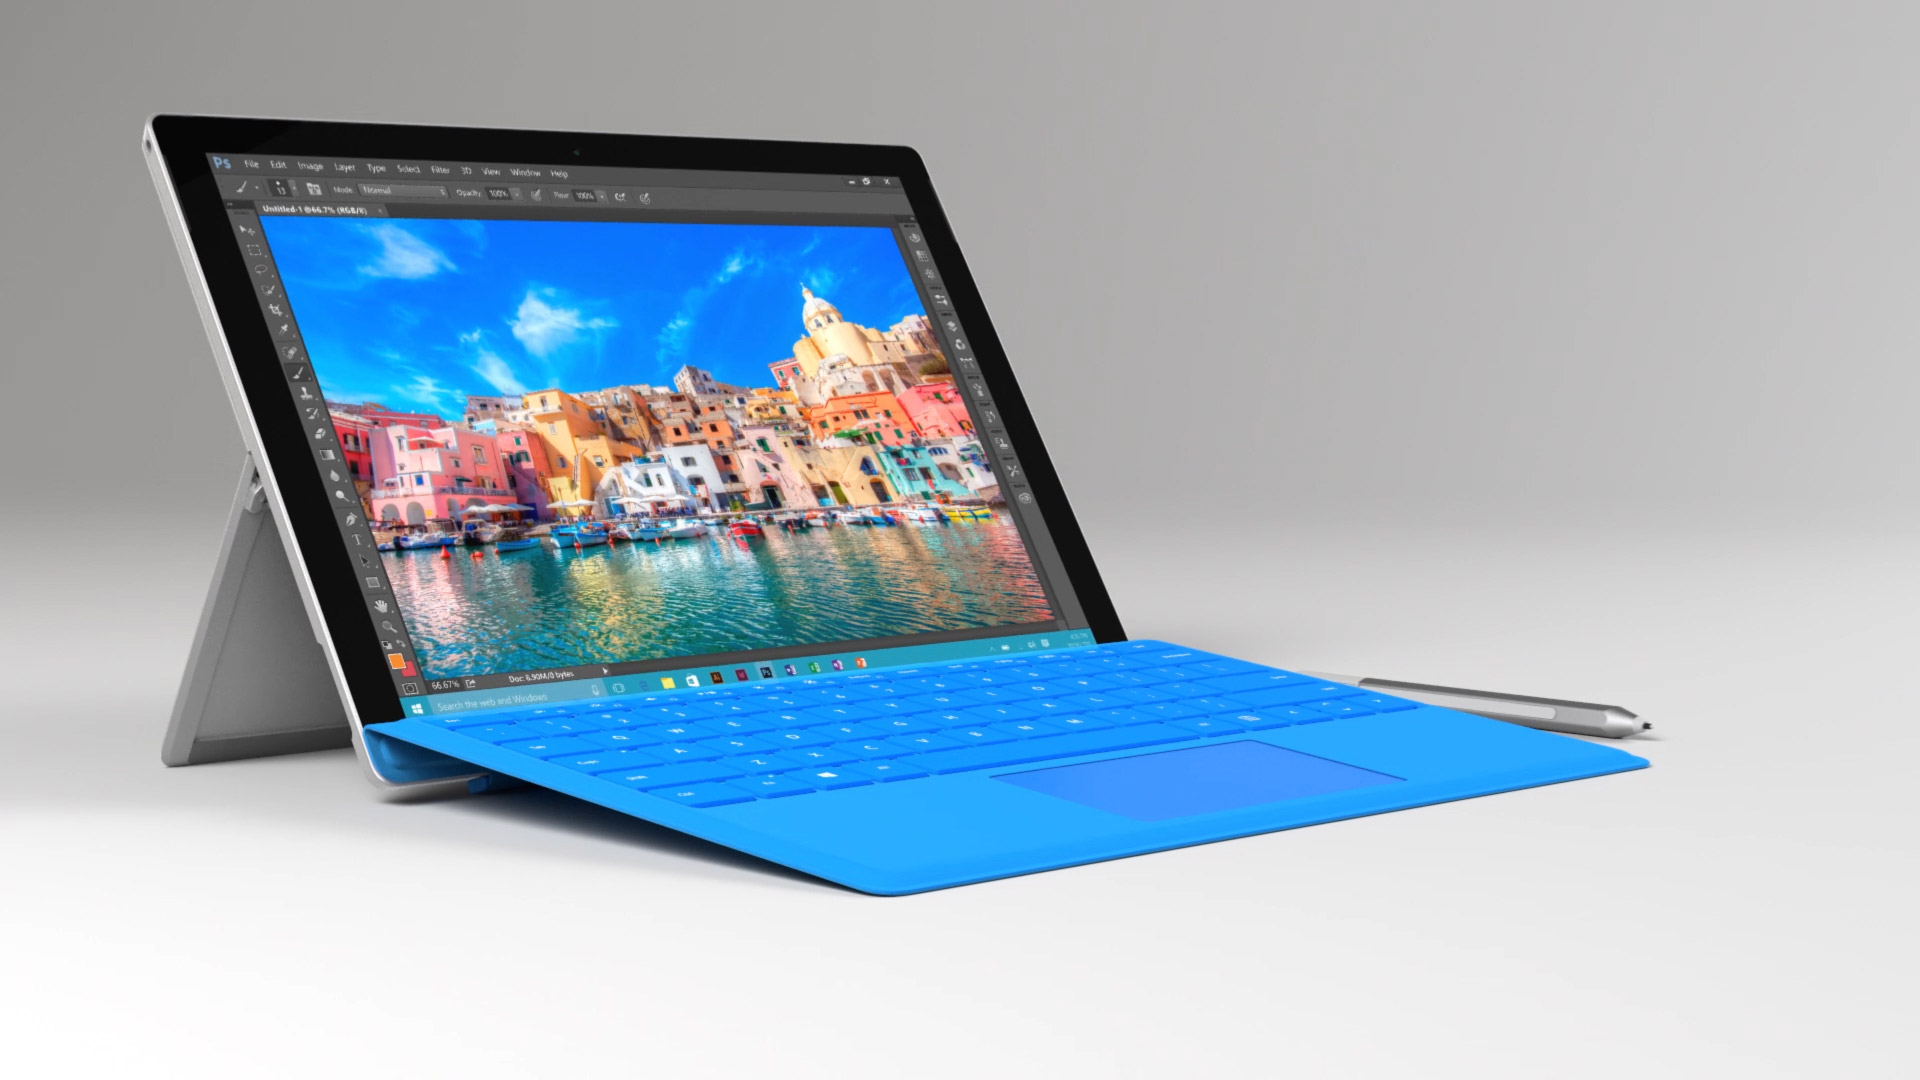 Referencia a la Surface Pro 5 aparece en LinkedIn